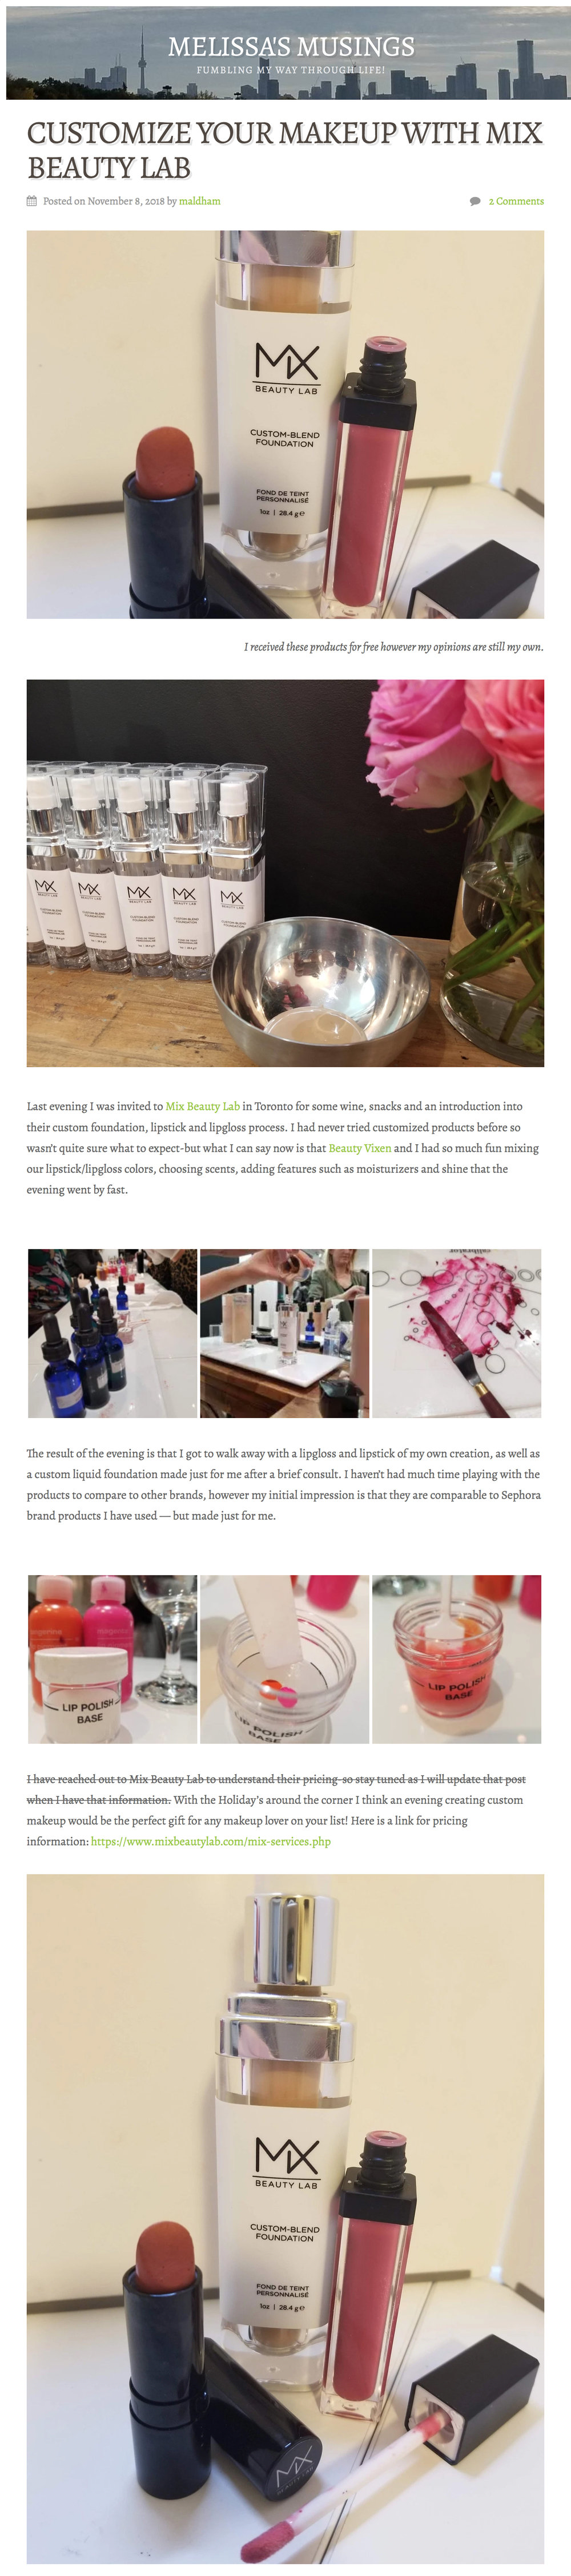 Mix Beauty Lab featured in  Melissa Musings Blog .